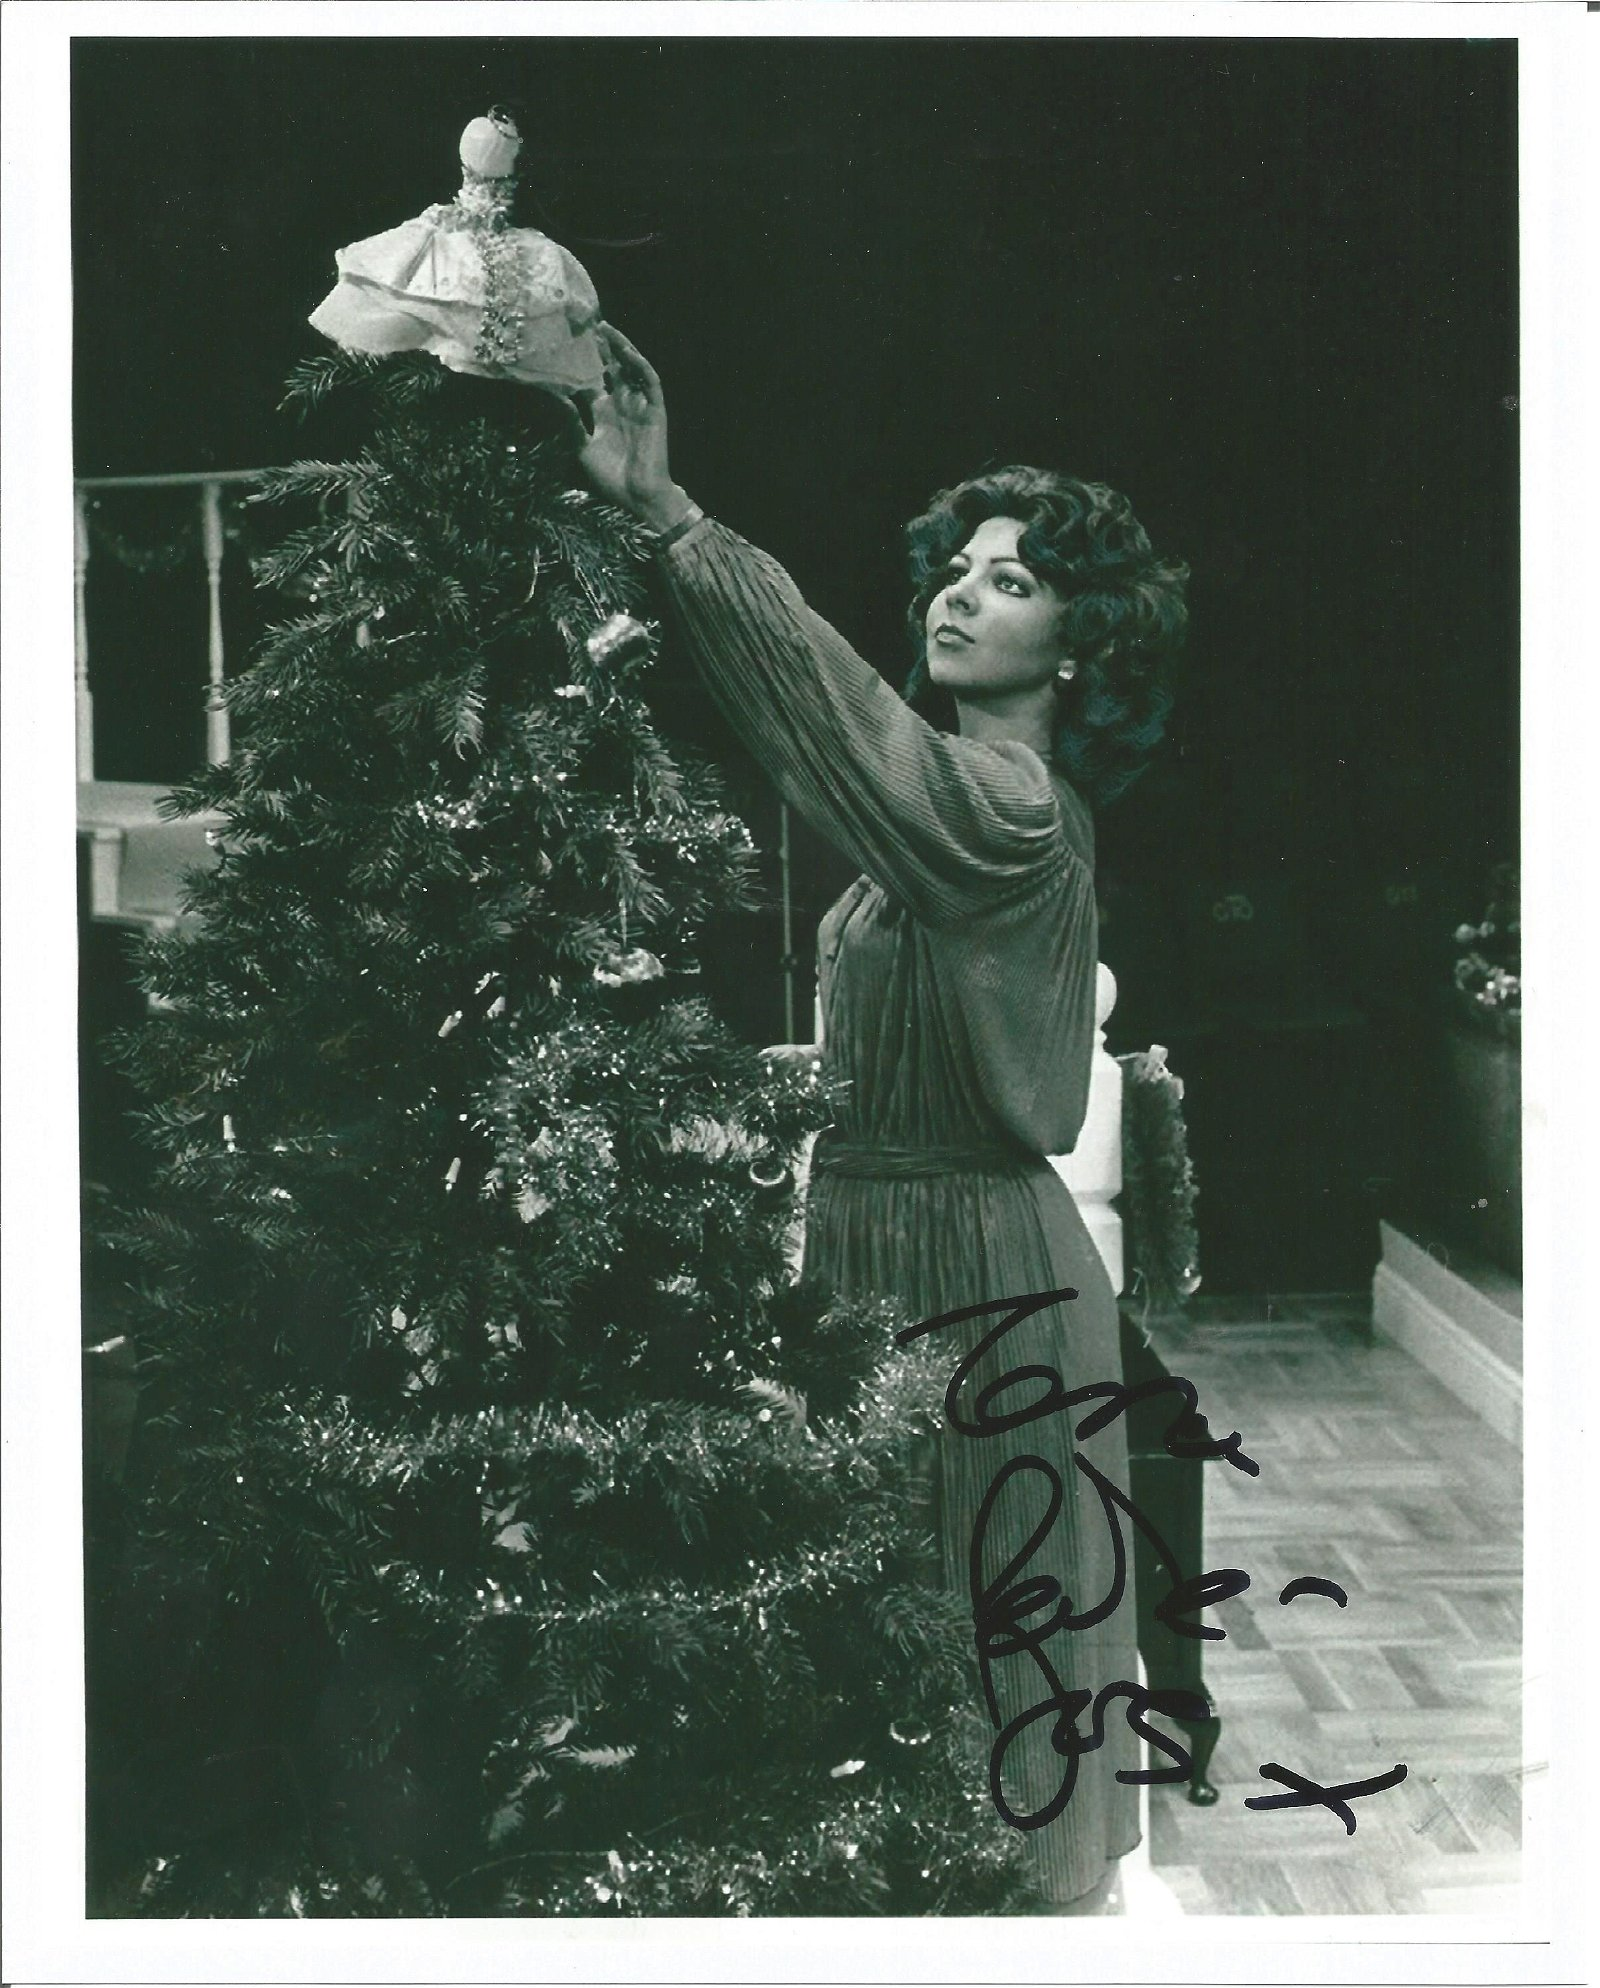 Tessa Peake Jones Only Fools and Horses Actress Signed